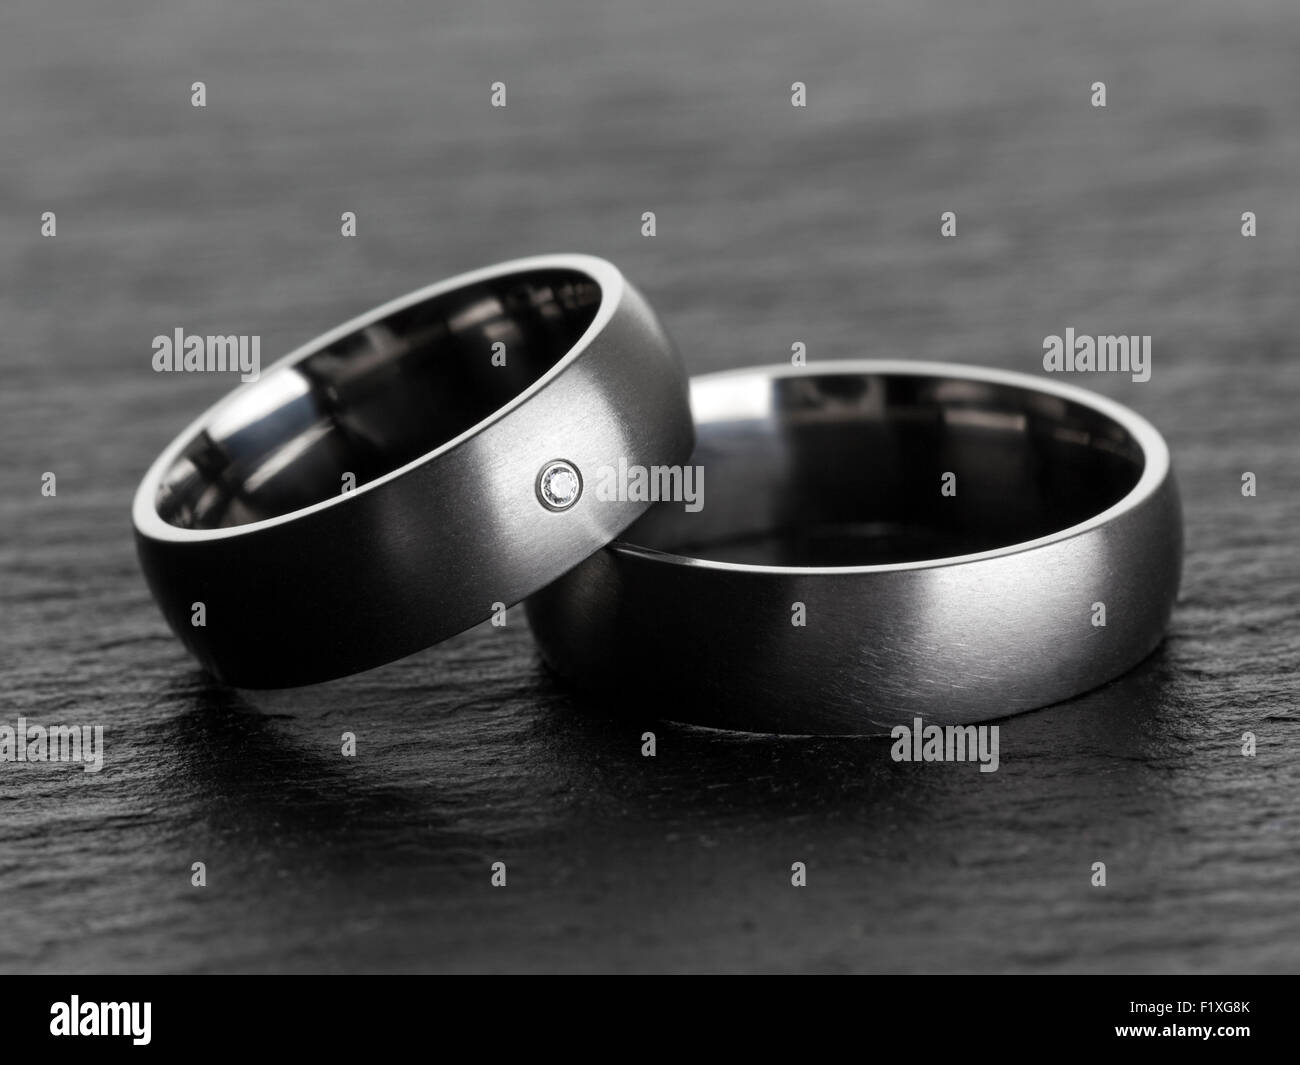 Silver or platinum wedding rings on slate background - Stock Image